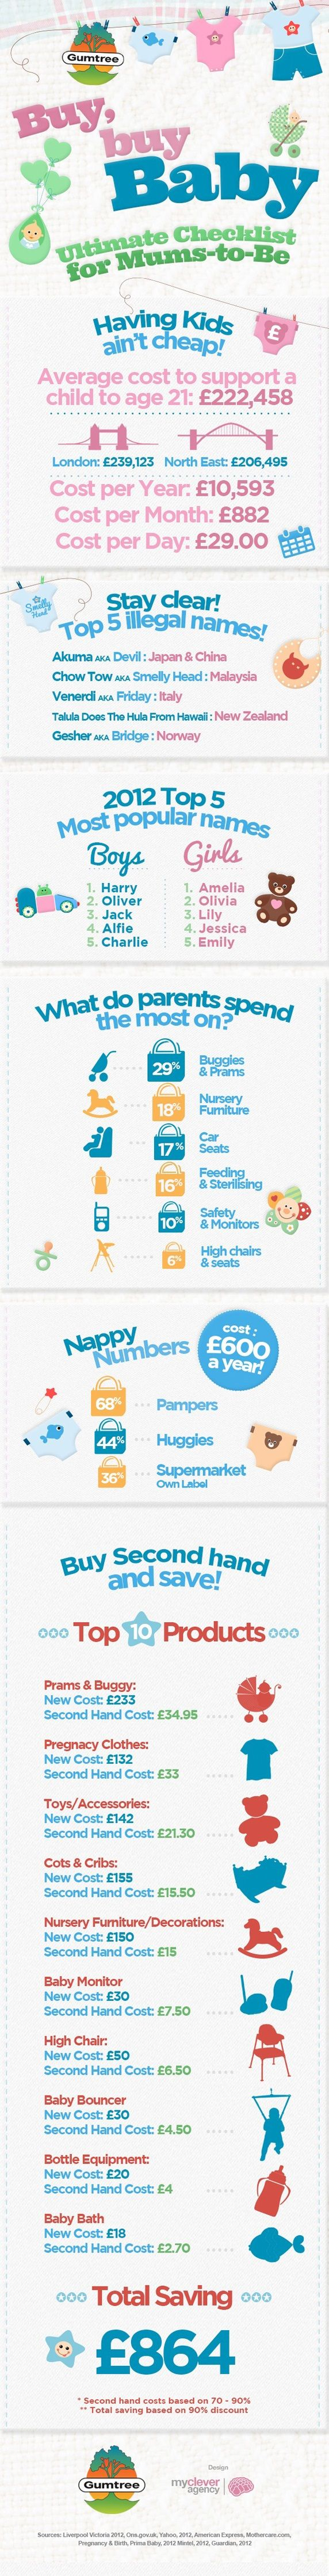 Baby IG Baby infographic, Second hand baby clothes, Cool